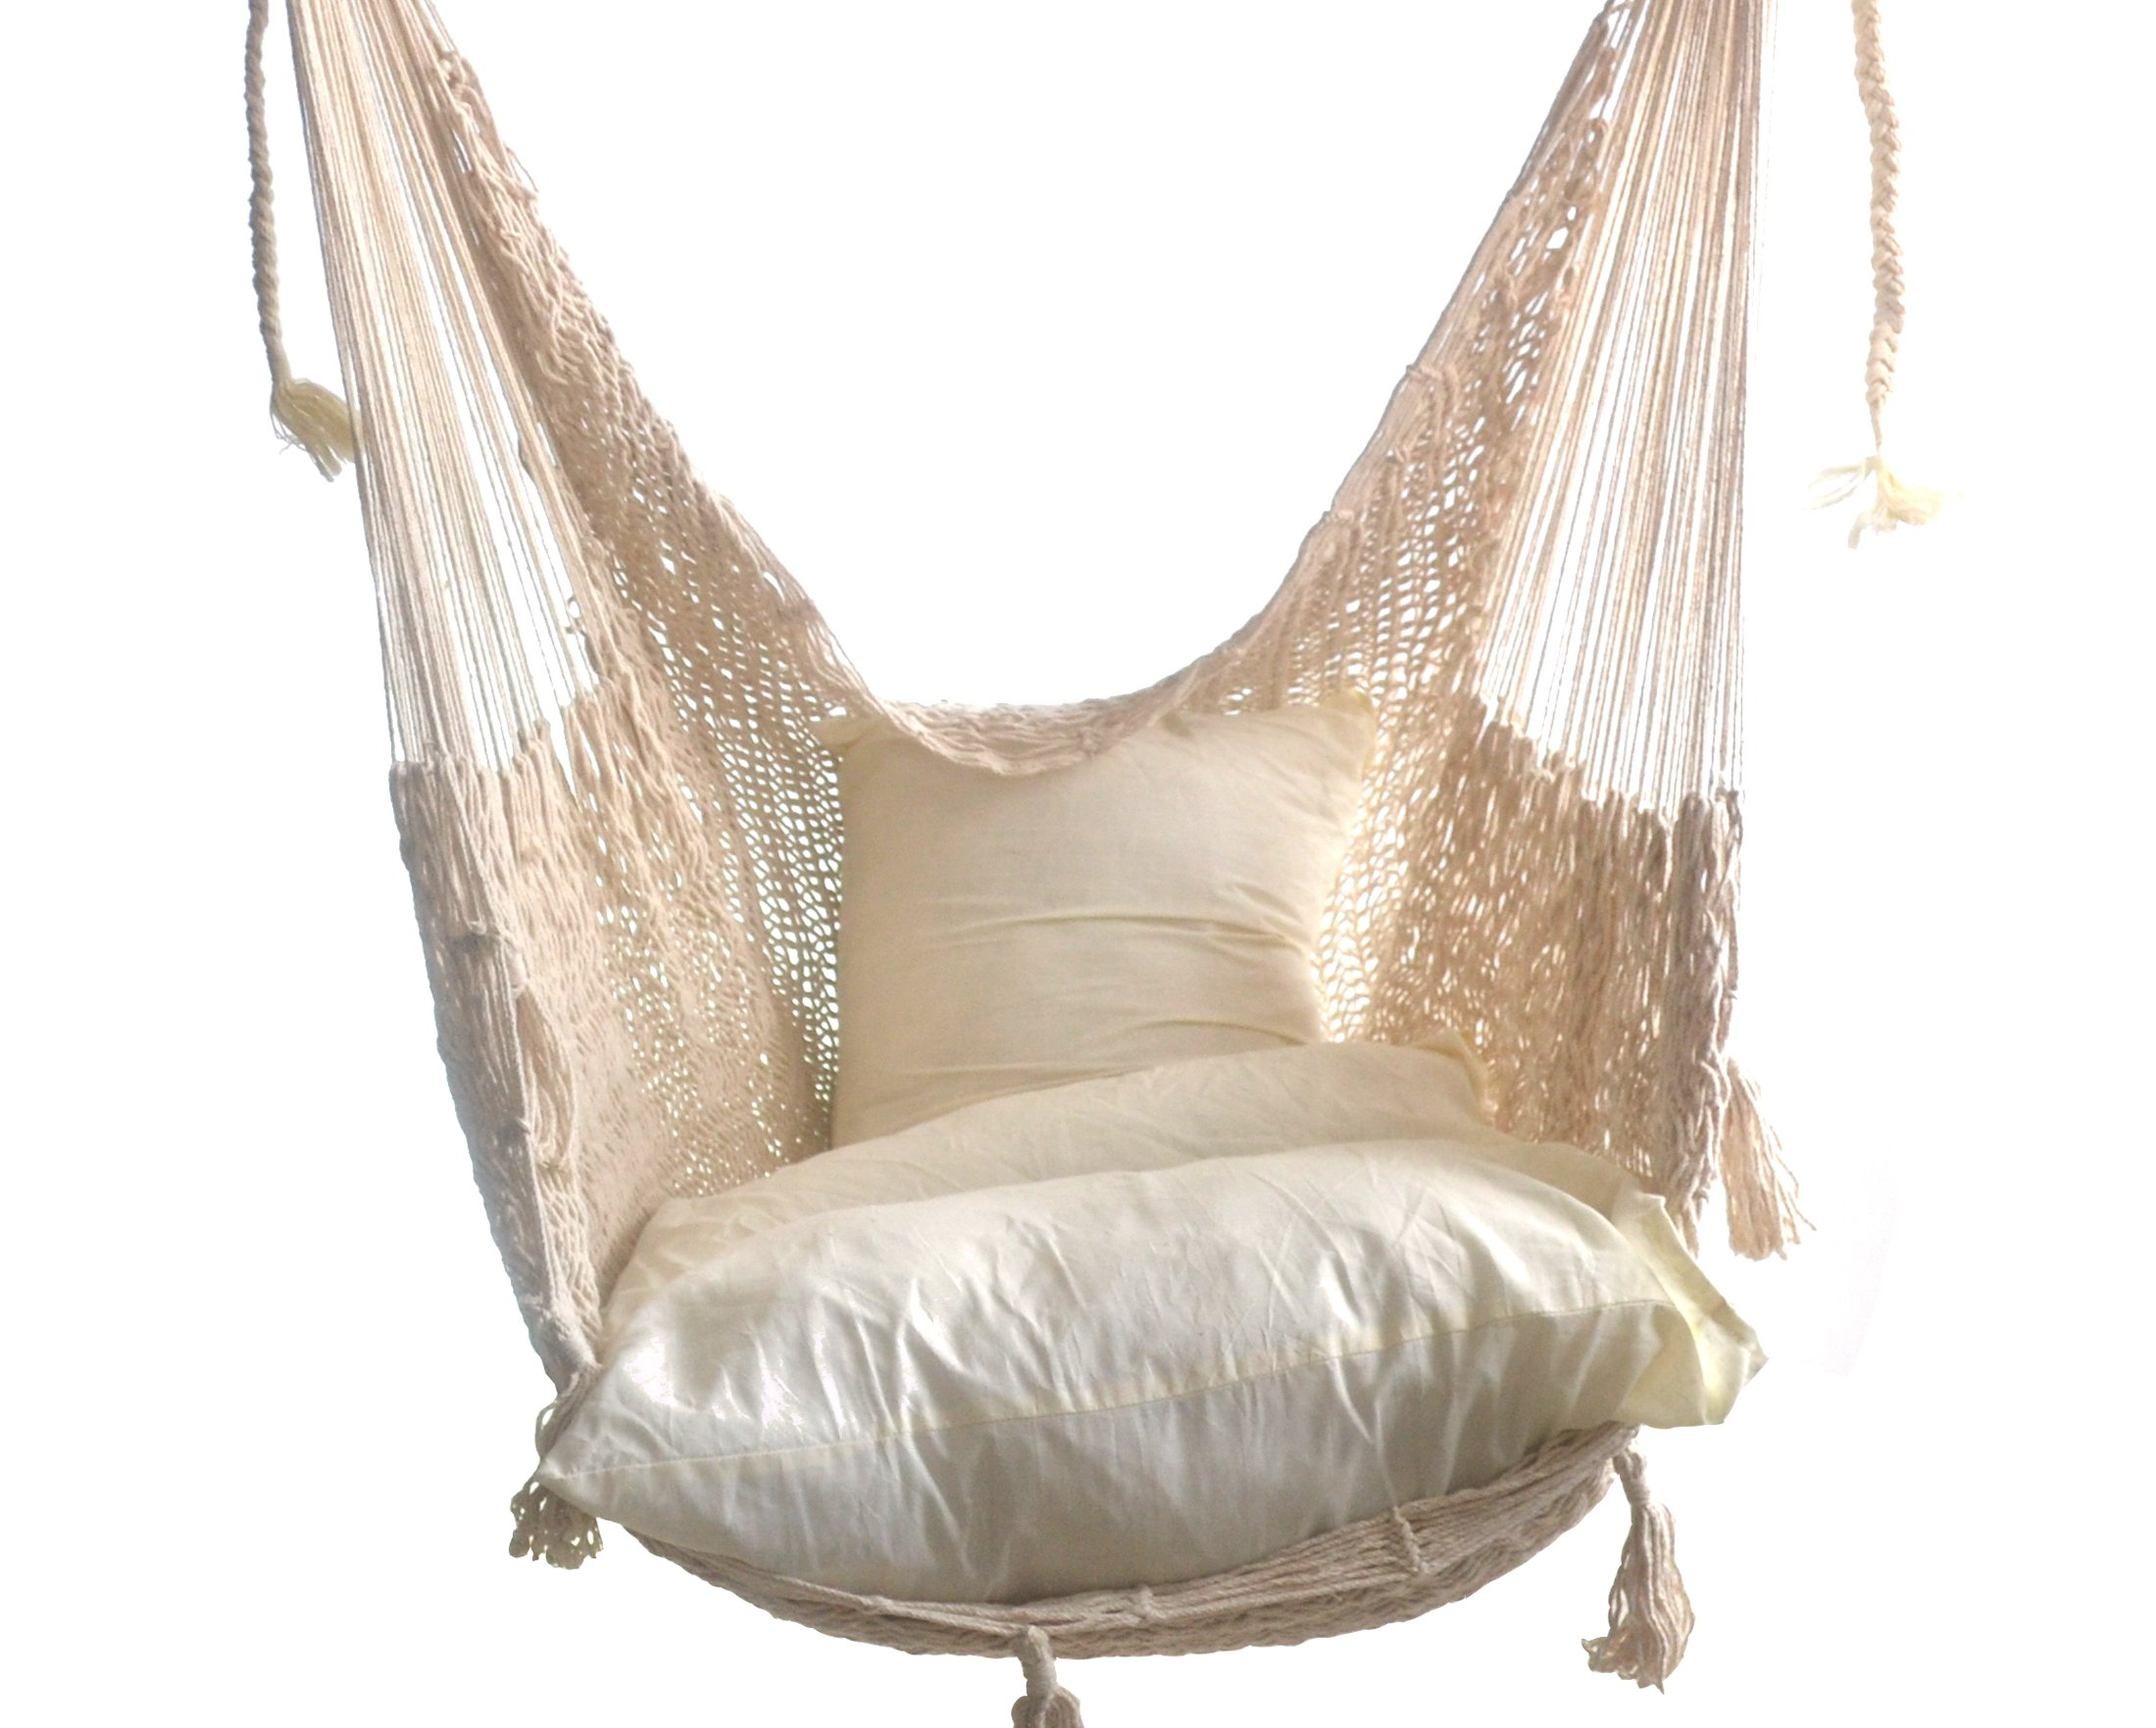 Hammocks Rada - CHAIR HAMMOCK DELUXE (Natural) - - THE BEST CHAIR HAMMOCK MAYAN STYLE , this Chair Hammock is elegance, wider, comfy, soft, make with natural cotton fibers - HIGH QUALITY, the Chair is make with tight weave using Thicker Strings in Cotton - RESISTANT, the Cotton Thicker Strings make strong the Chair Hammock and the Nylon Rope is make with Nylon Strings offering strength in all its components - patio-furniture, patio, hammocks - 81RjzRJ70IL -